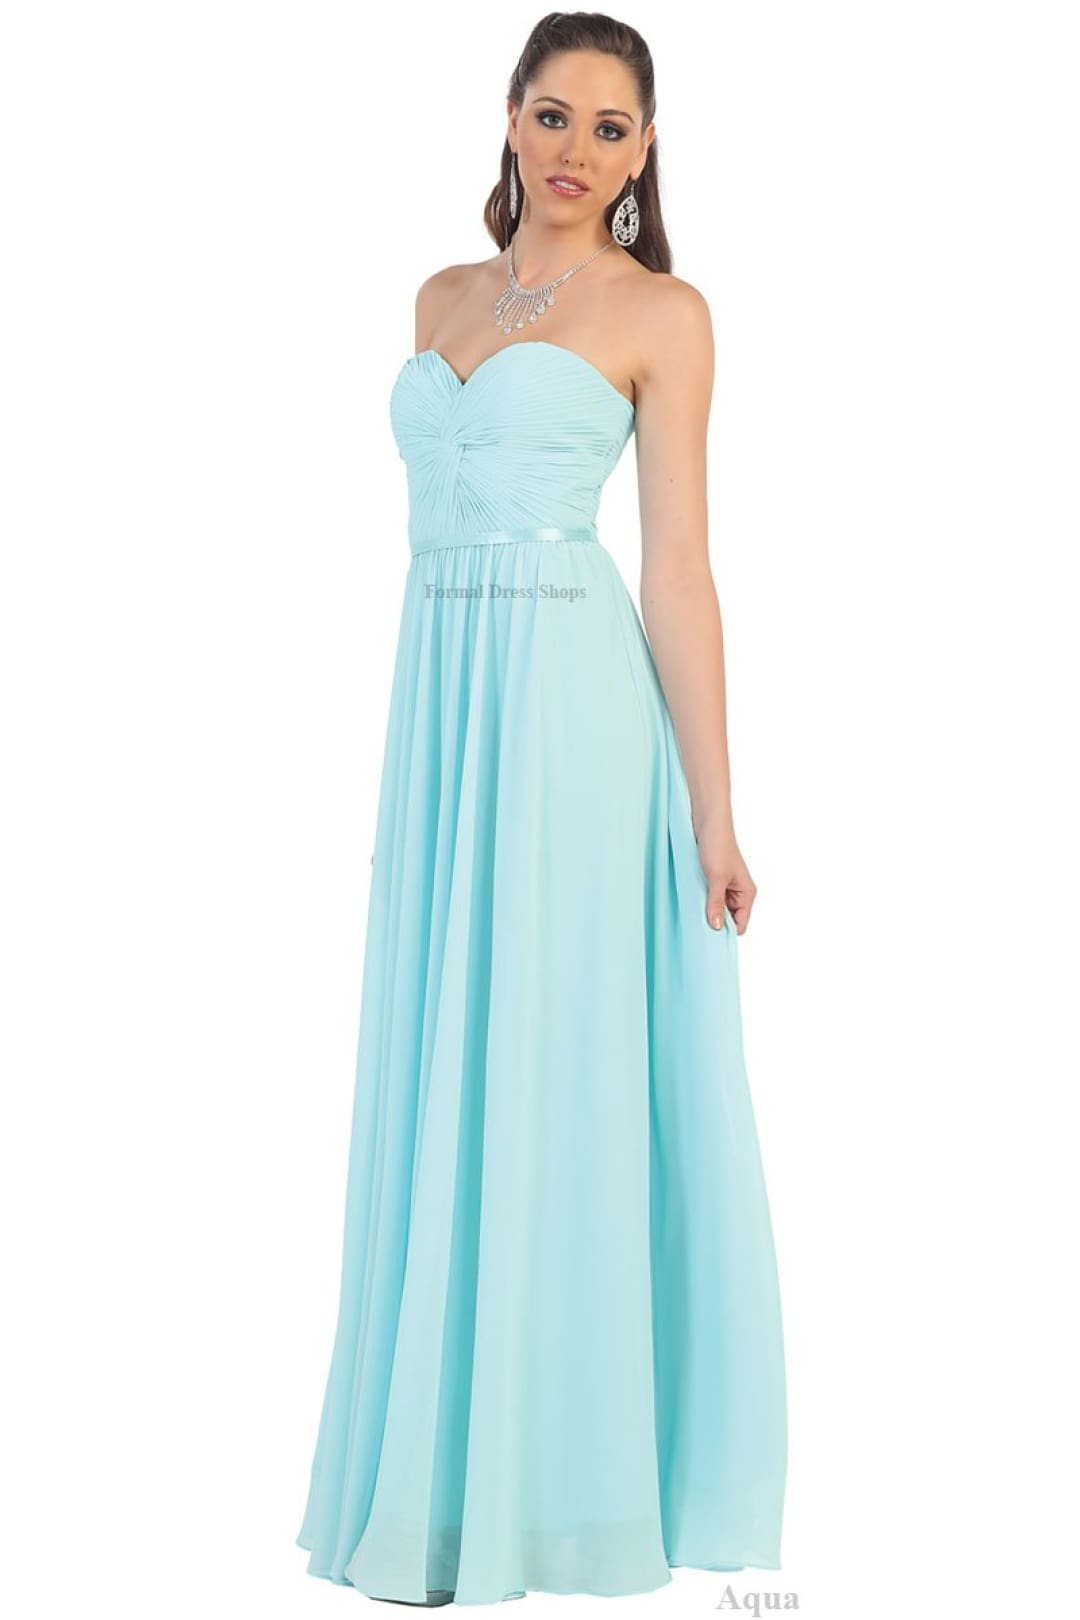 Lace up Back Bridesmaids Dress - Aqua / 6